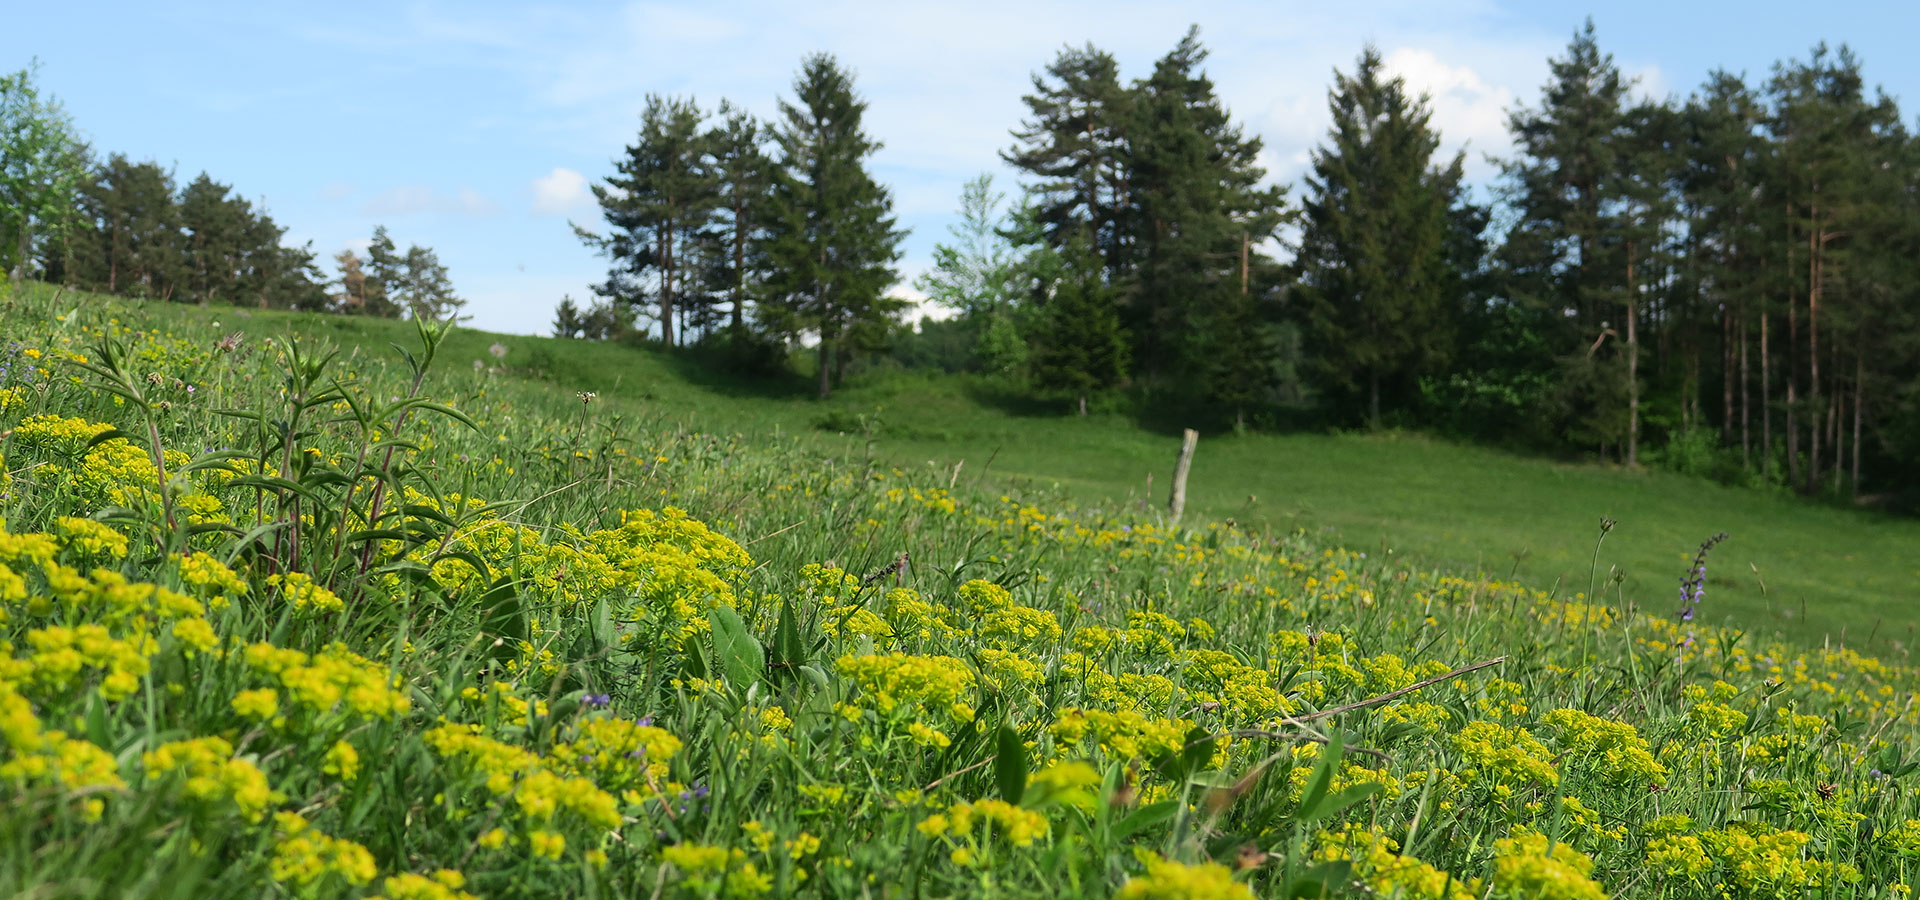 Meadow with Cypress Spurge - Euphorbia cyparissia